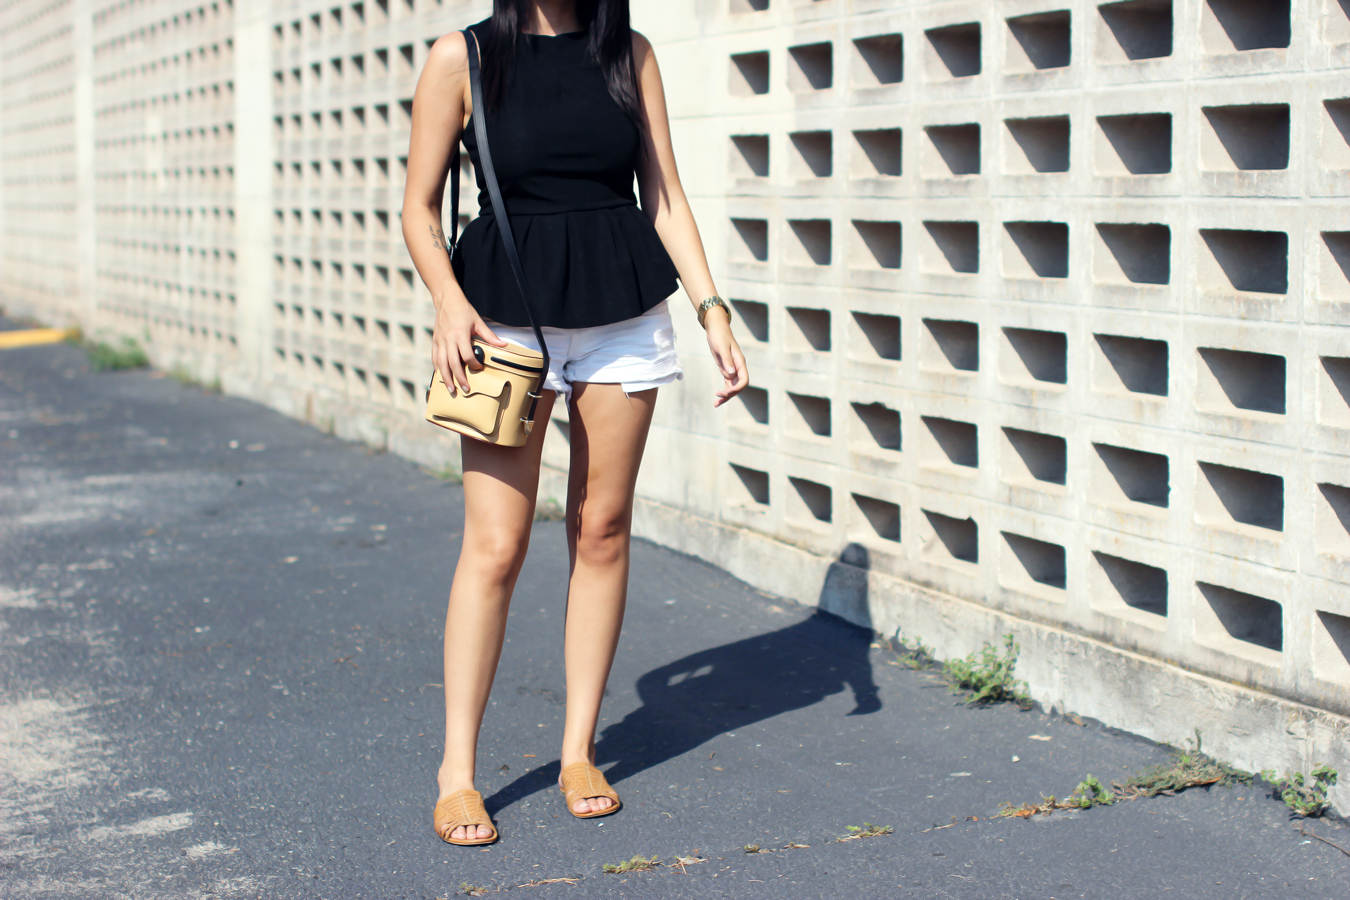 AUSTIN-STYLE-BLOG-PEPLUM-SANDALS-FIXIN-TO-THRILL-NORDSTROM-TRENDS-FW15-SUMMER-TRENDY-CHIC-GLAM-FASHION-OUTFIT-TEXAS-BLACK-HAIR-2